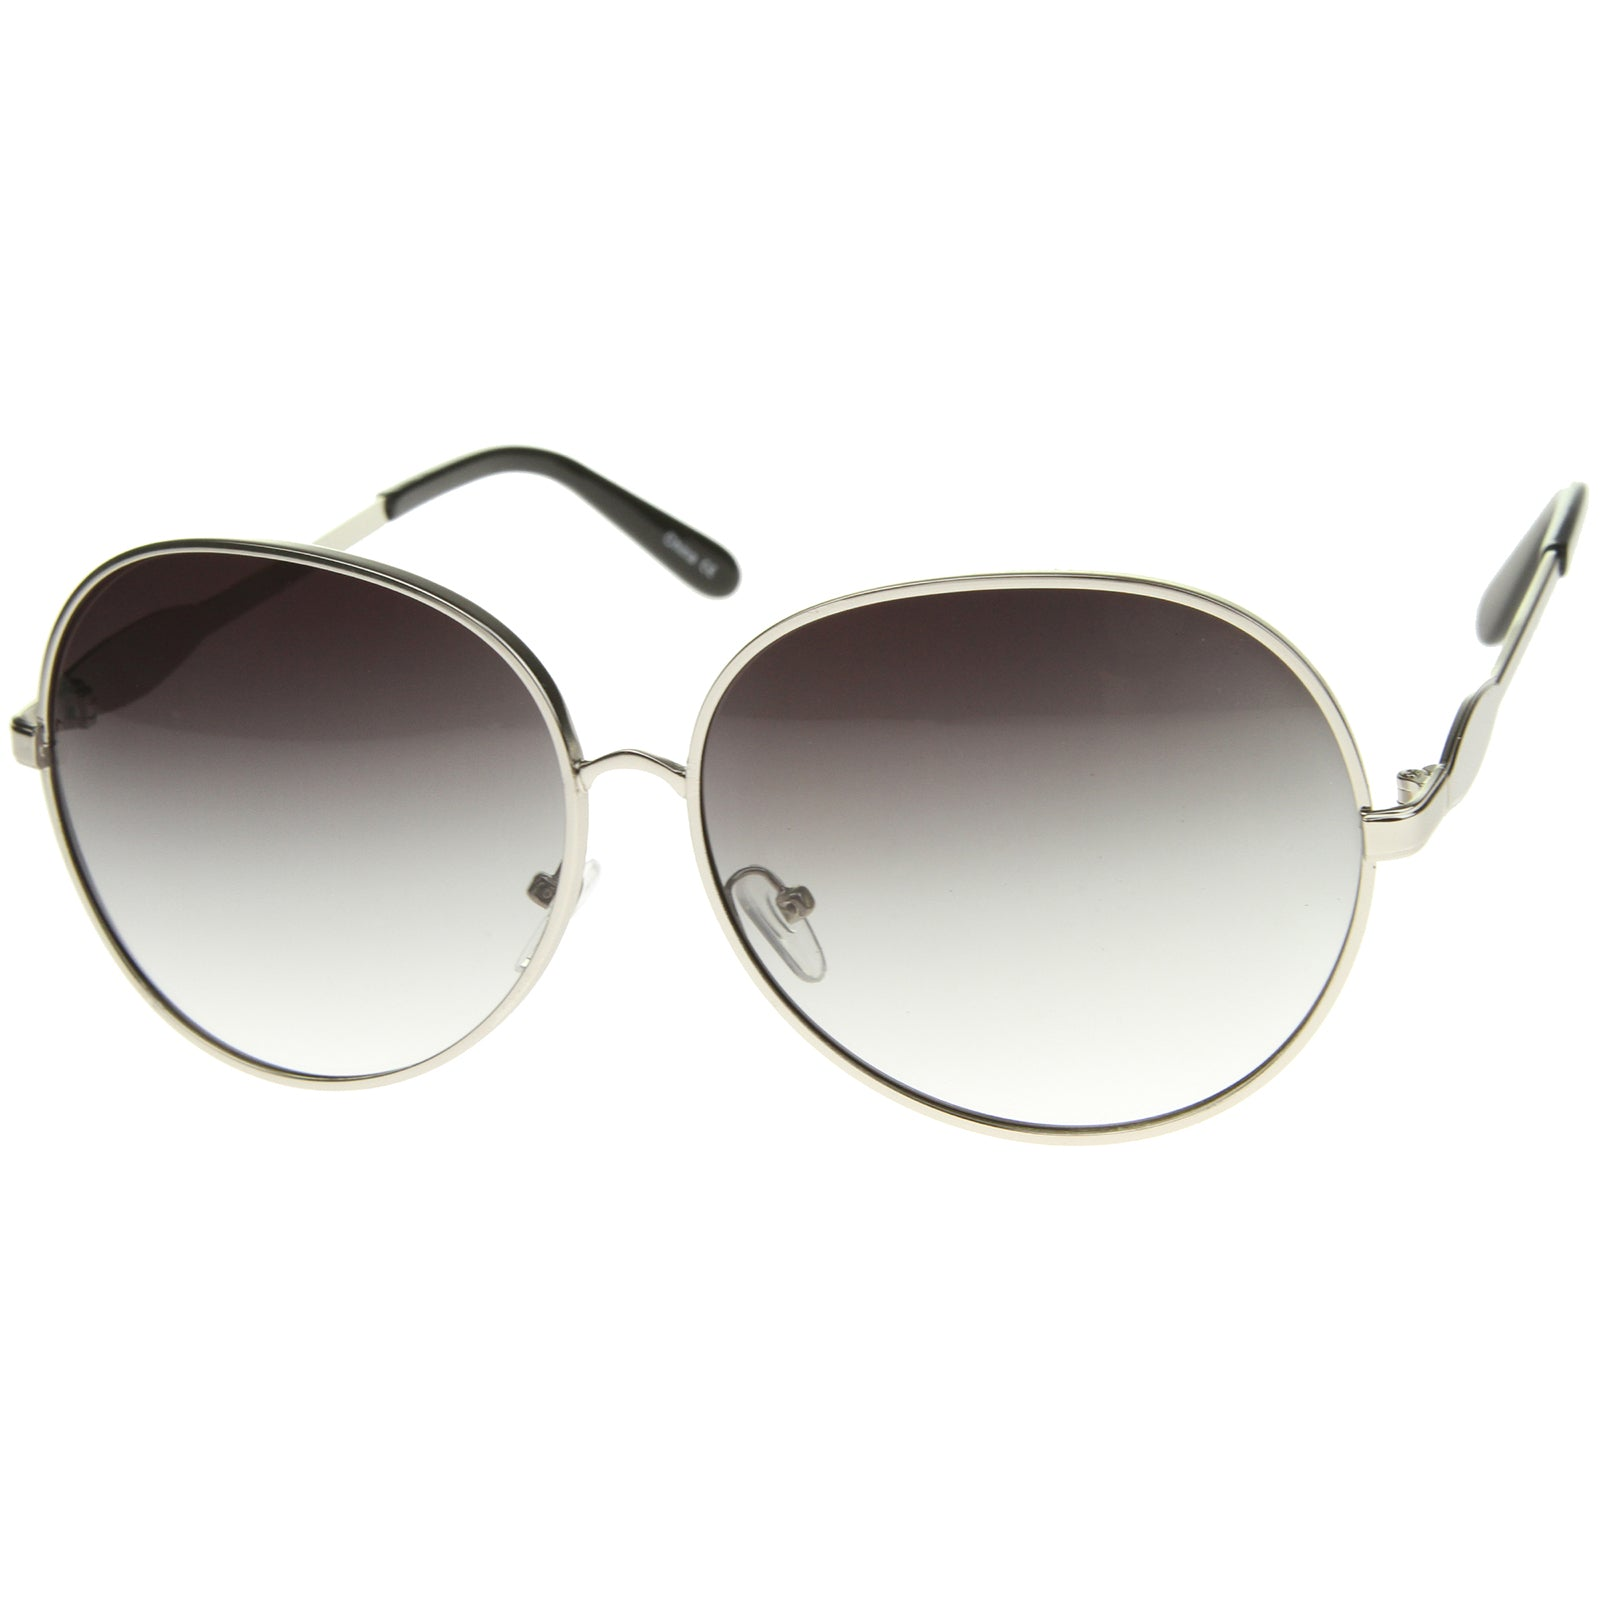 Womens Glam Full Metal Frame Oversized Round Sunglasses 63mm - sunglass.la - 6